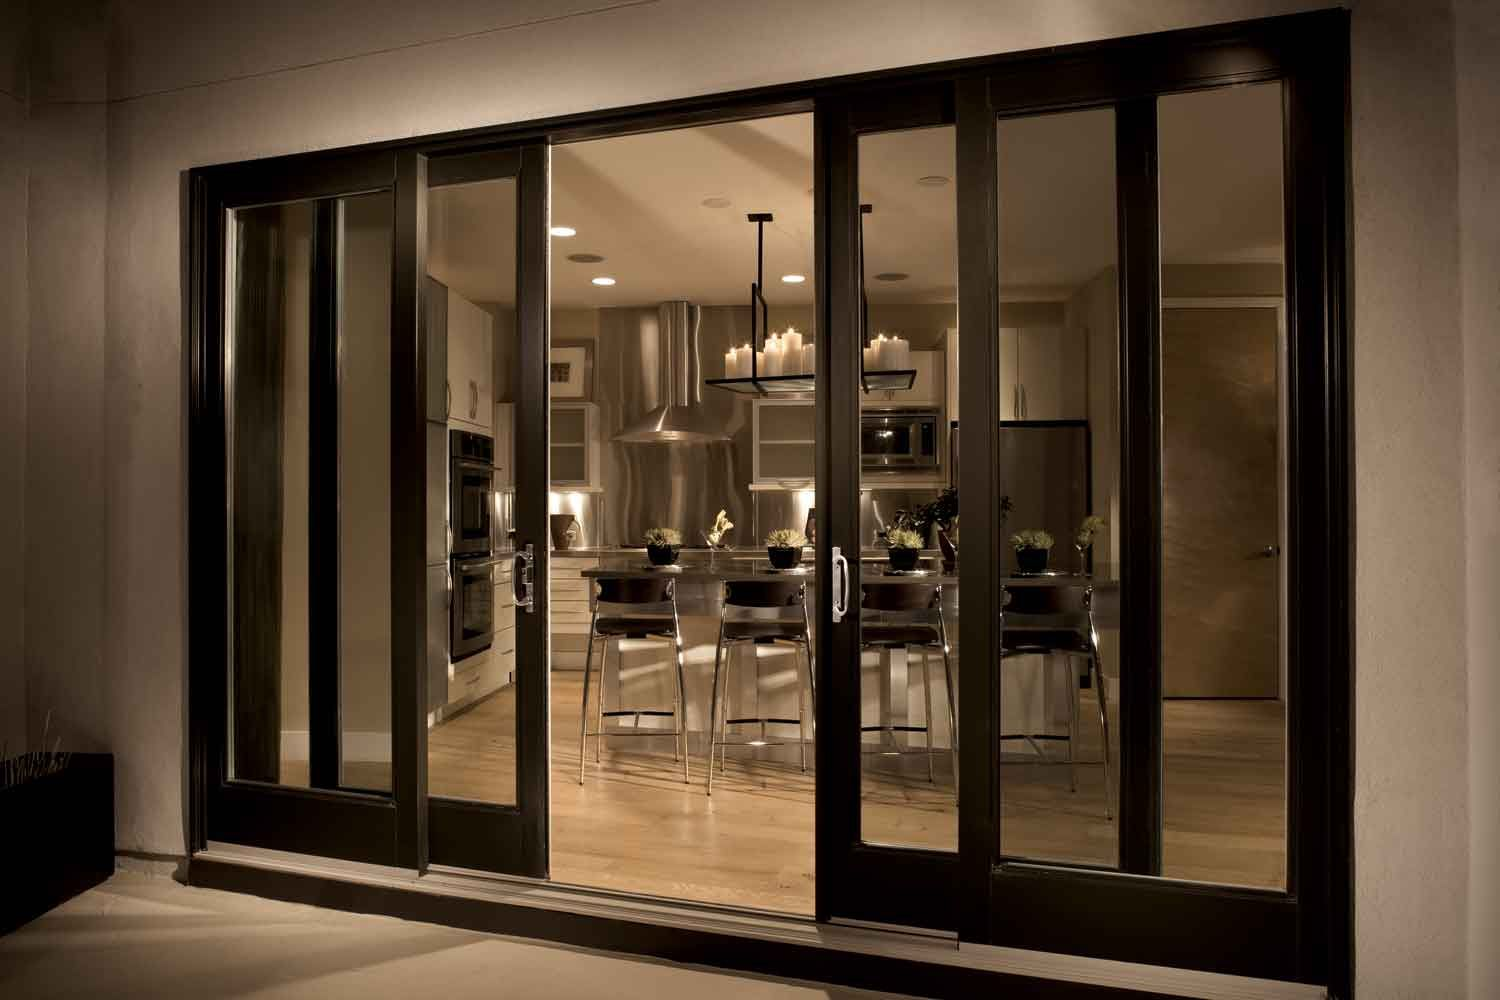 Fiberglass sliding patio doors 2 3 or 4 panel for Center sliding patio doors